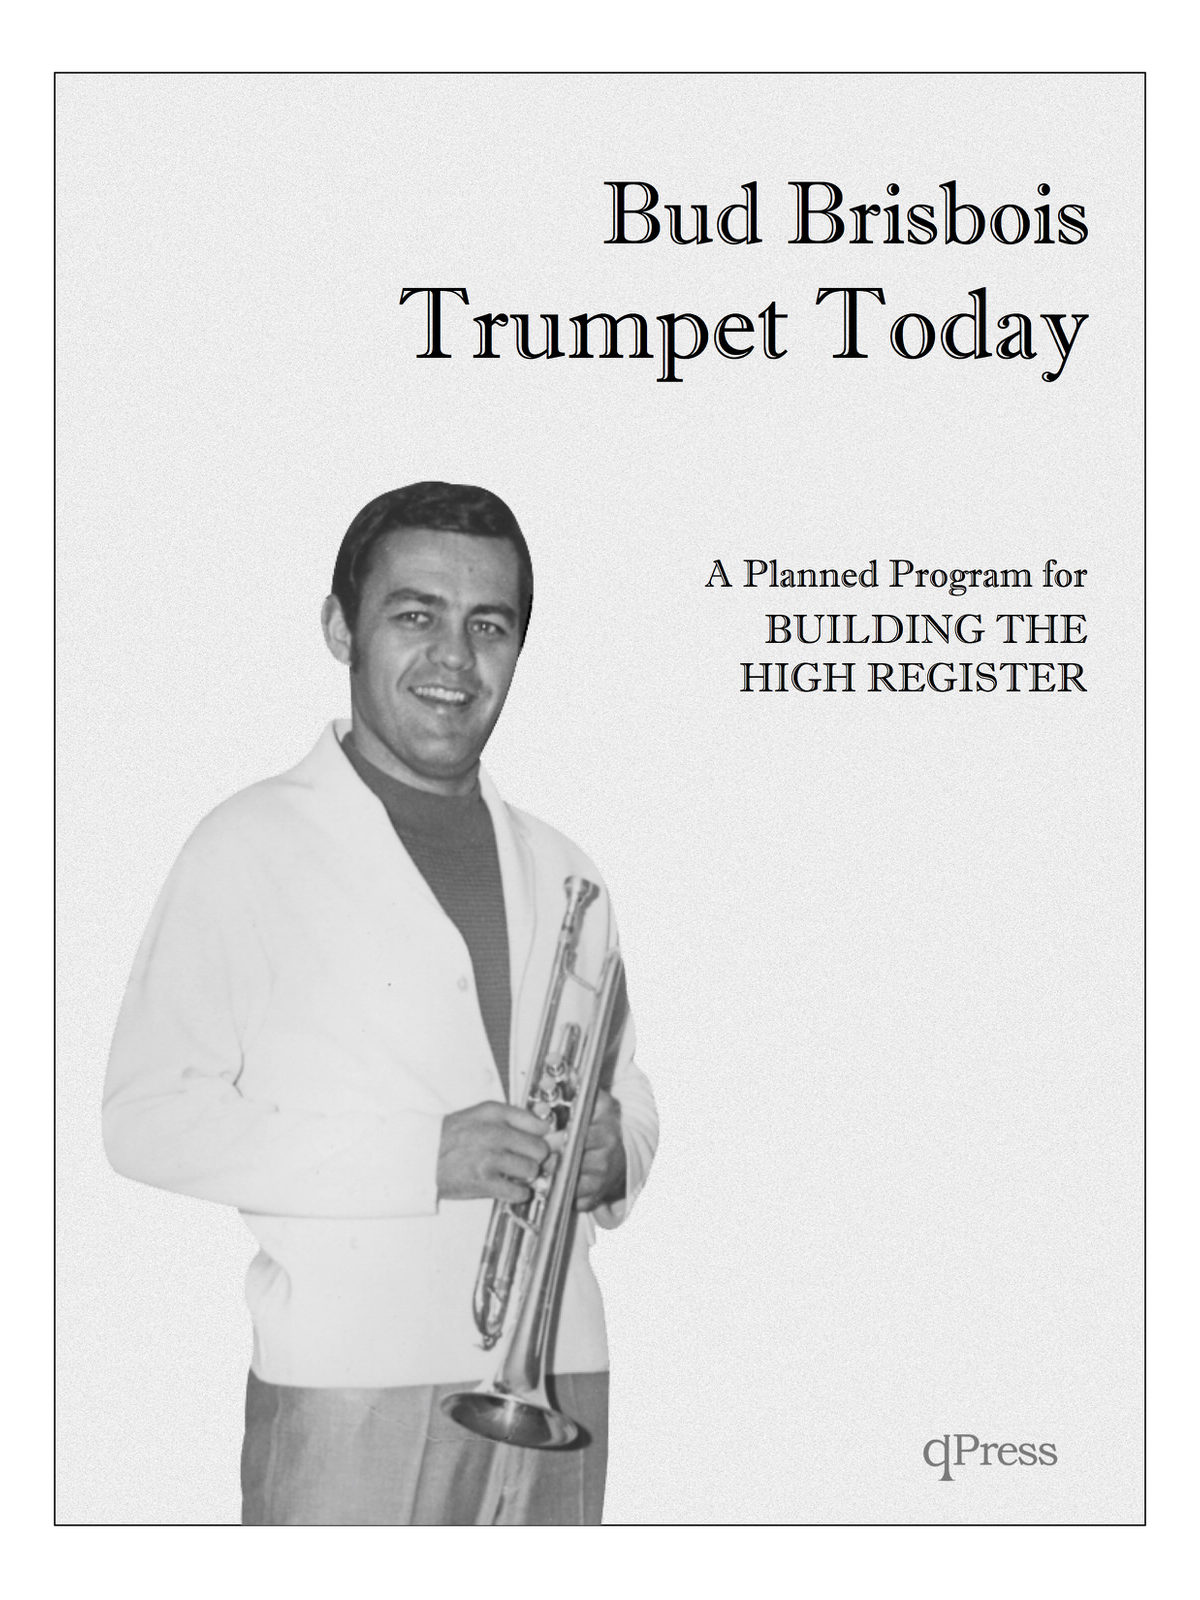 brisbois-trumpet-today-a-planned-program-for-building-the-high-register